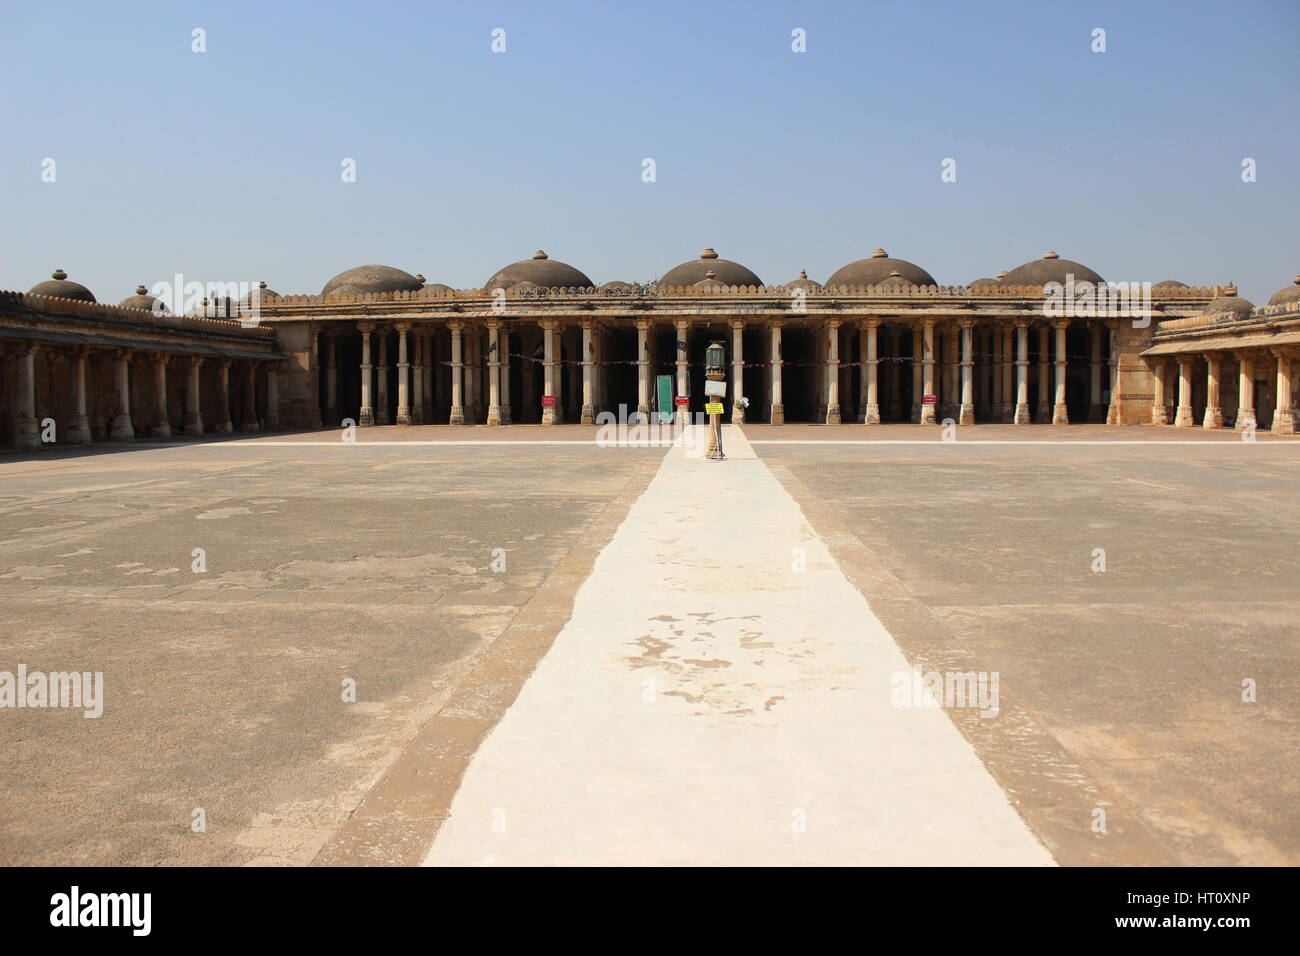 Mosque in the Campus of Sarkhej Roza with pillars and domes, Sarkhej Roza, Ahmedabad, Gujarat India - Stock Image